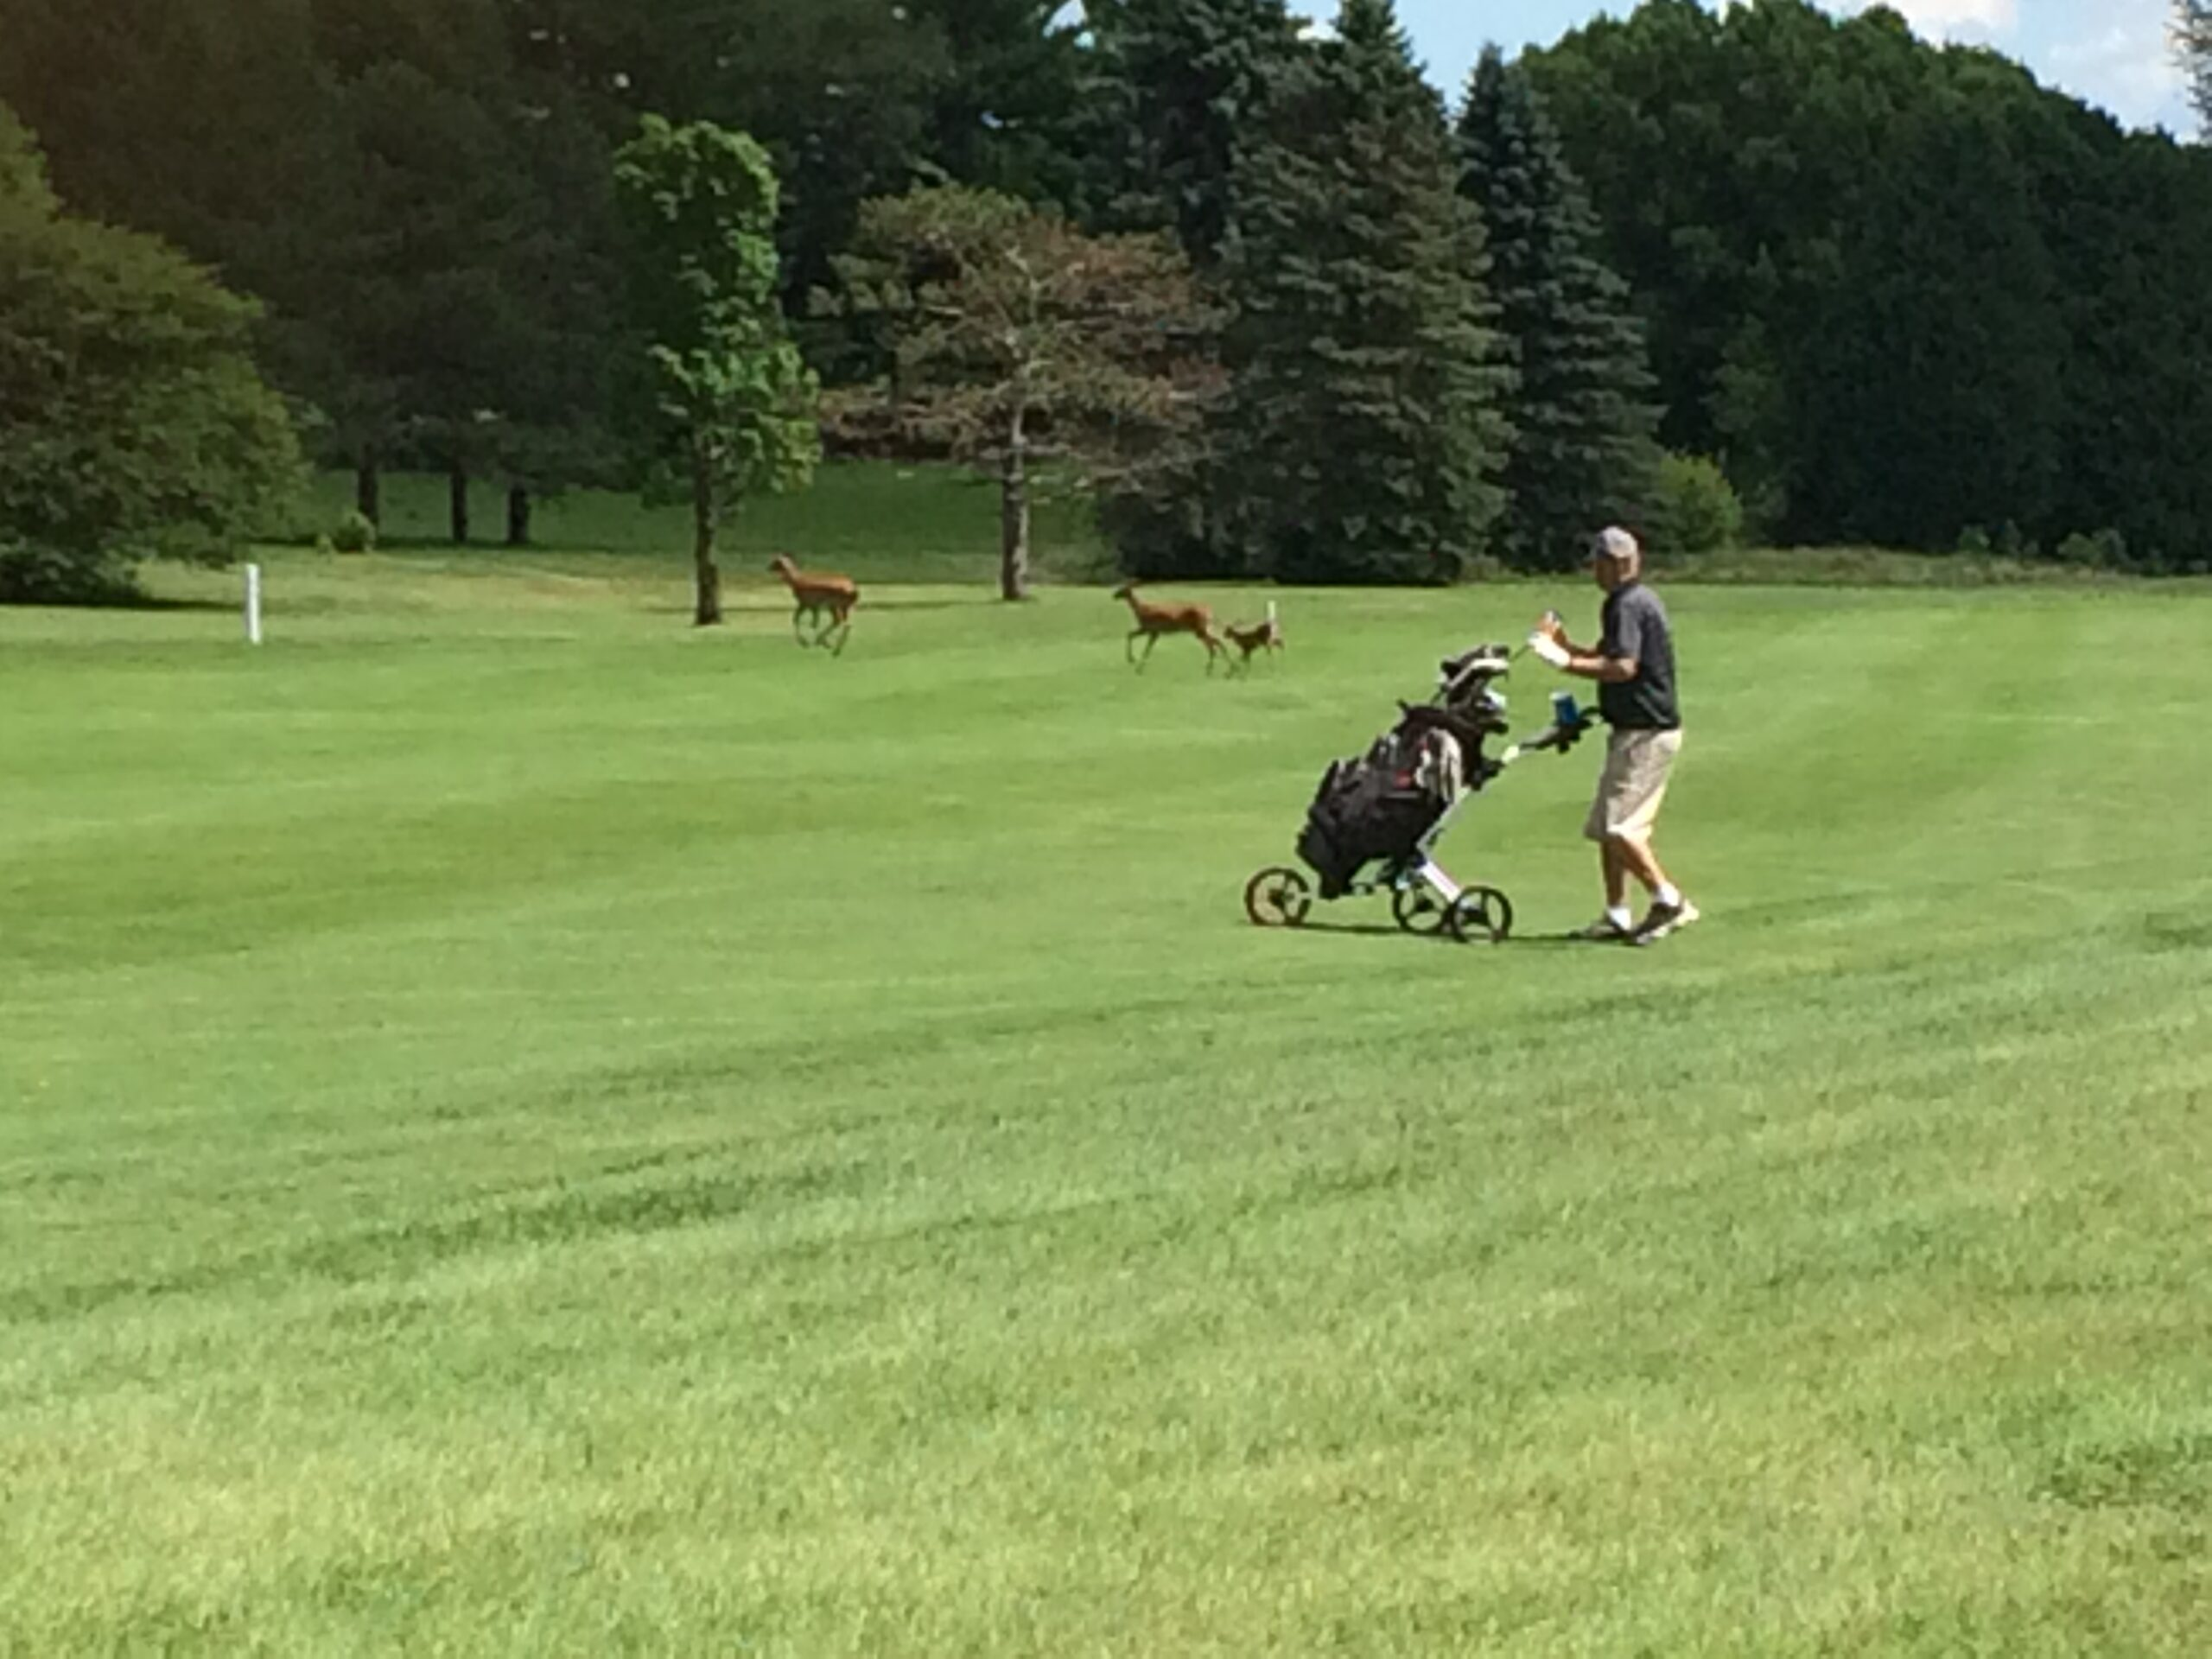 Golfer and deer